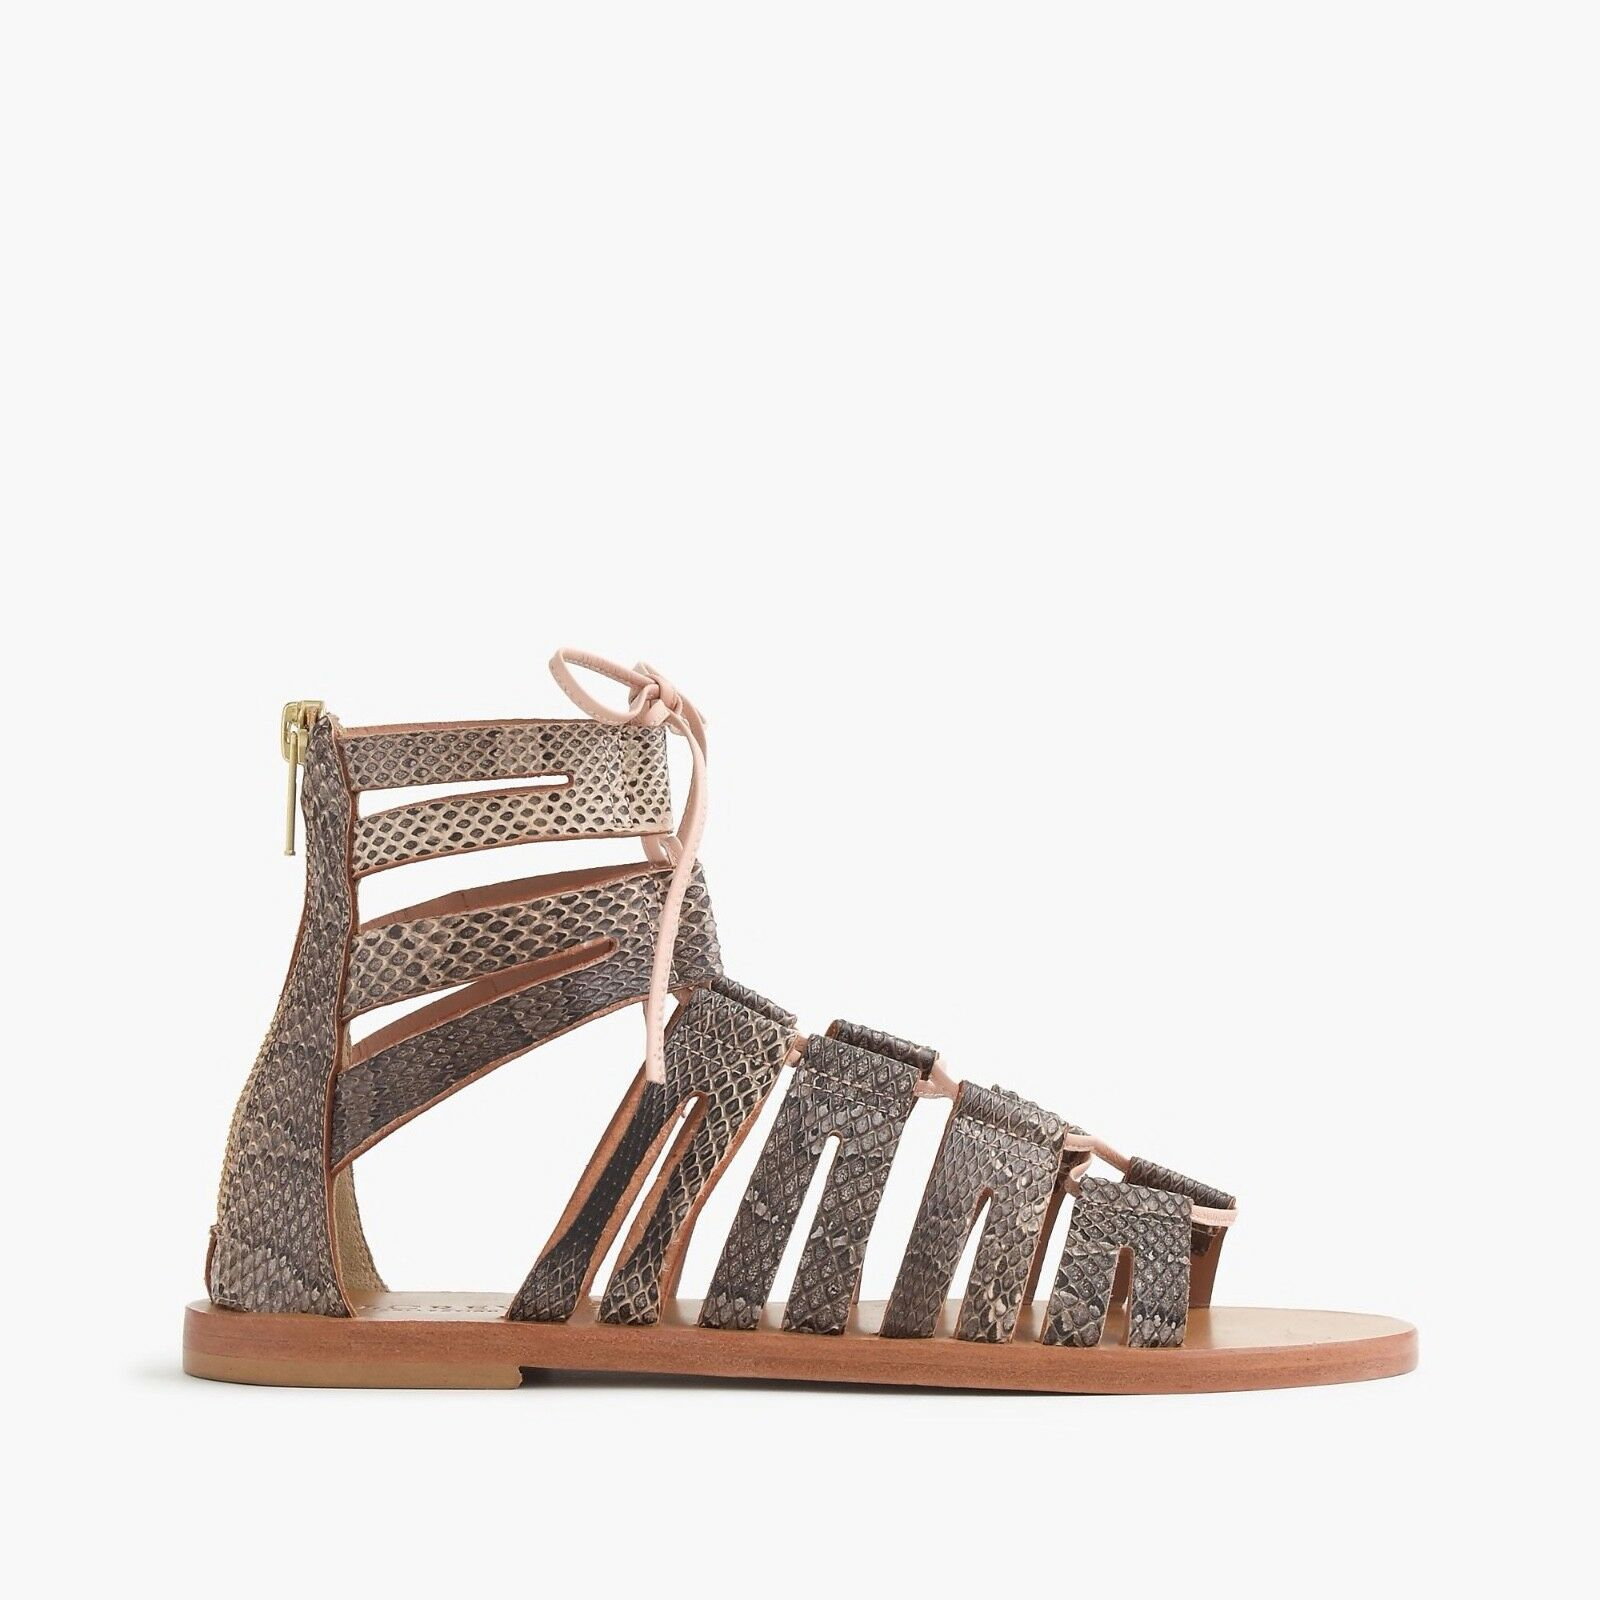 J.Crew Aztec Snakeskin Lace-Up Gladiator Sandals Size 9  178 c4134 Made in